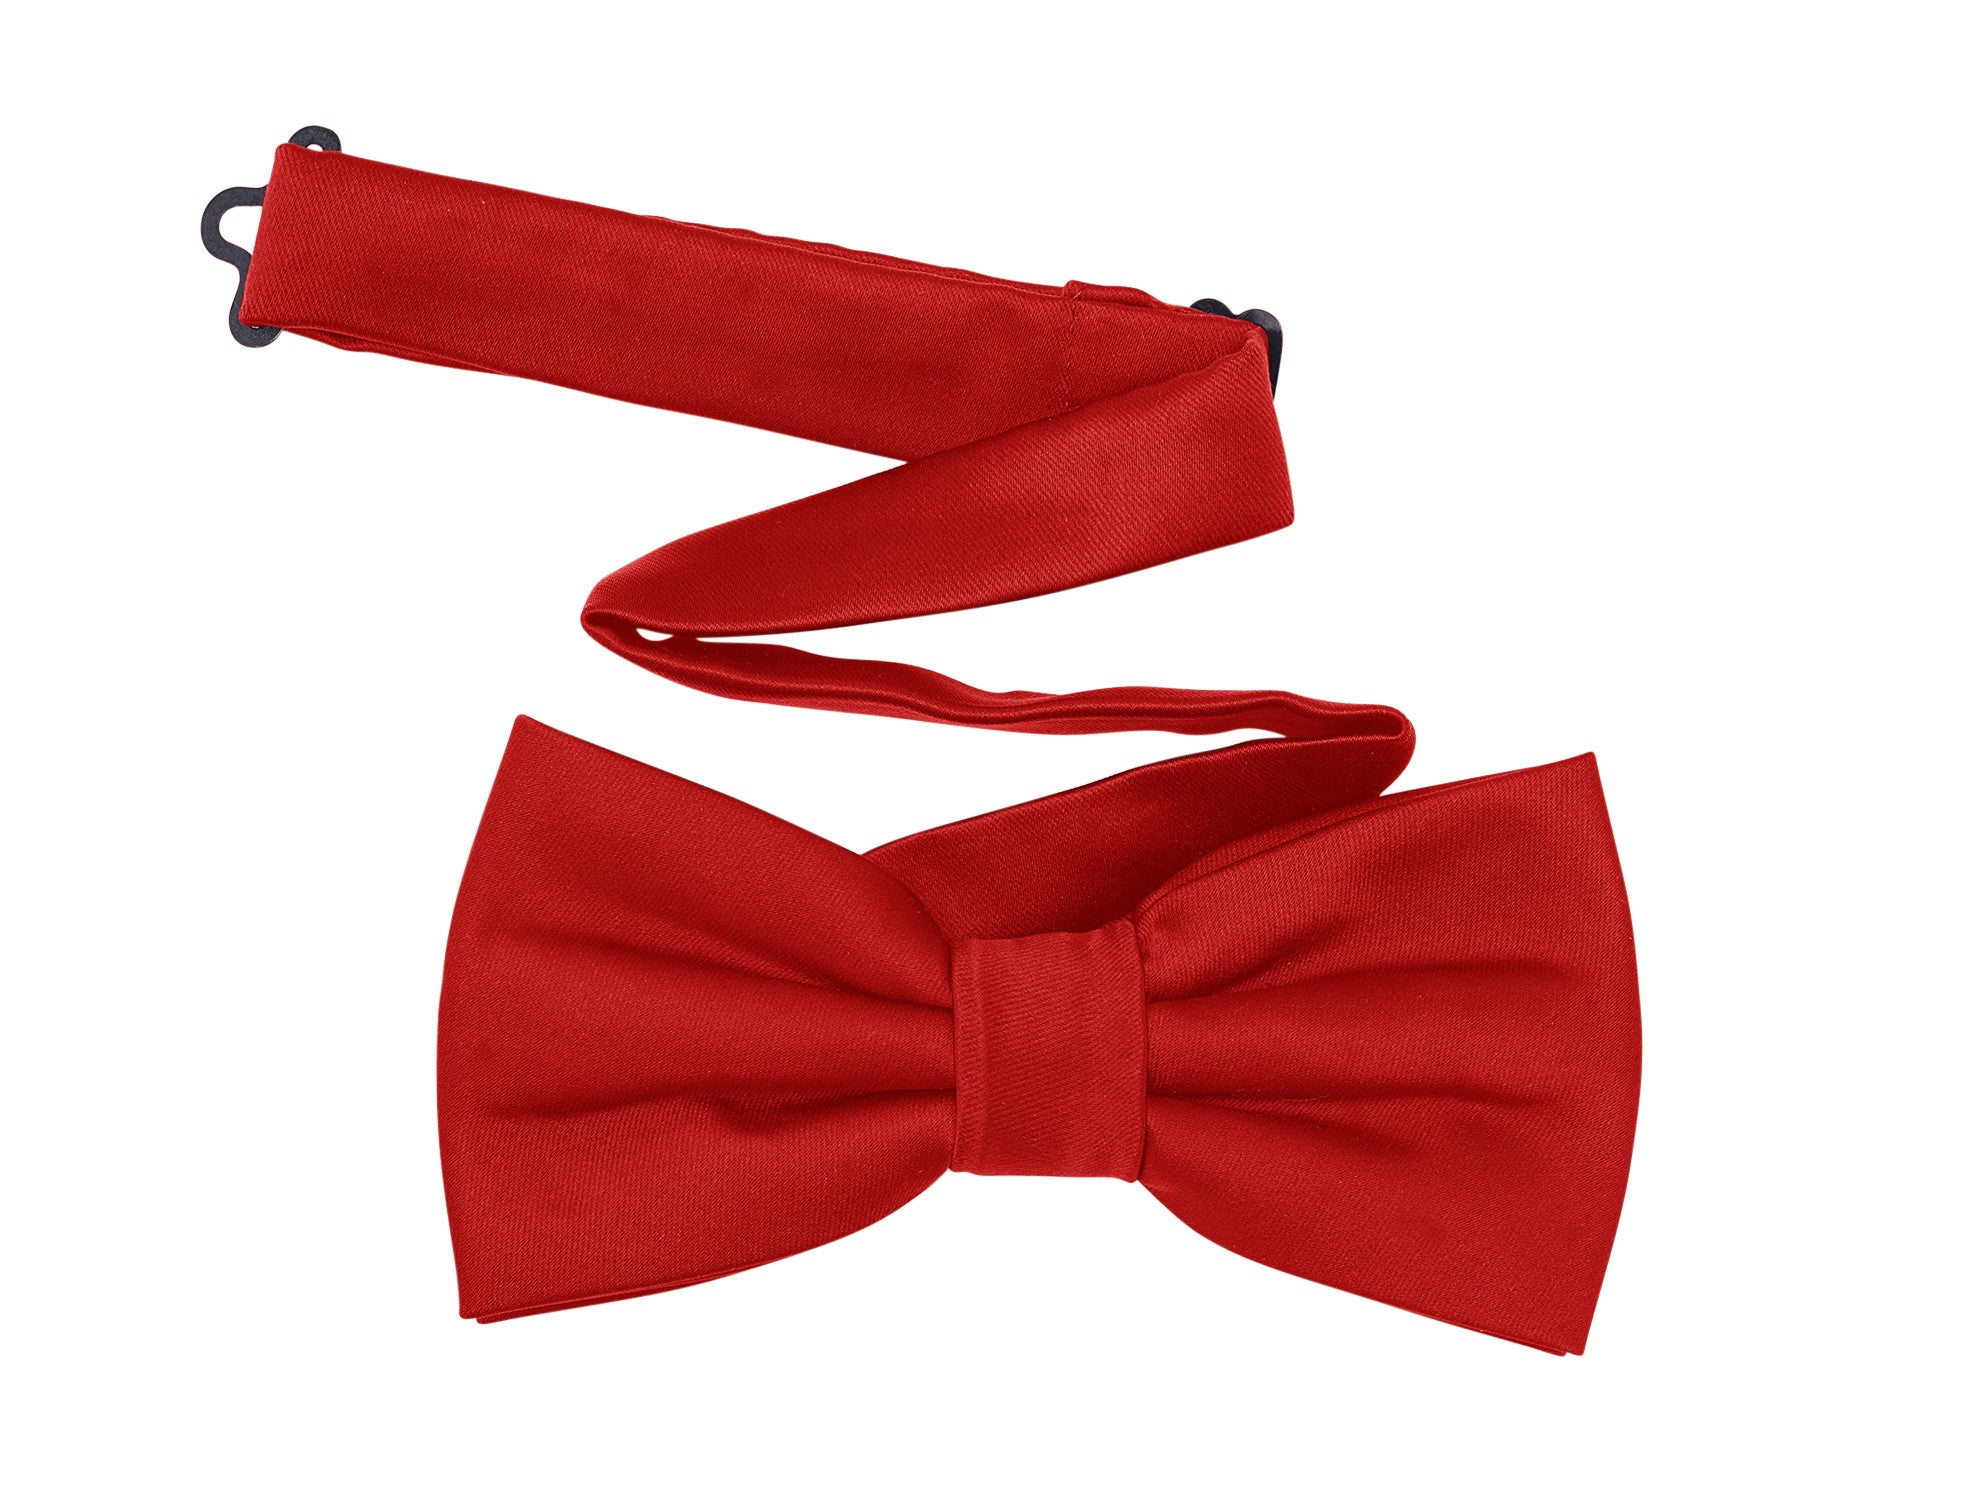 Harvest Male Red Bow Tie - Solid Color Satin Pre Tied Bow Tie for Men. One Size. Adjustable to 23 inches.